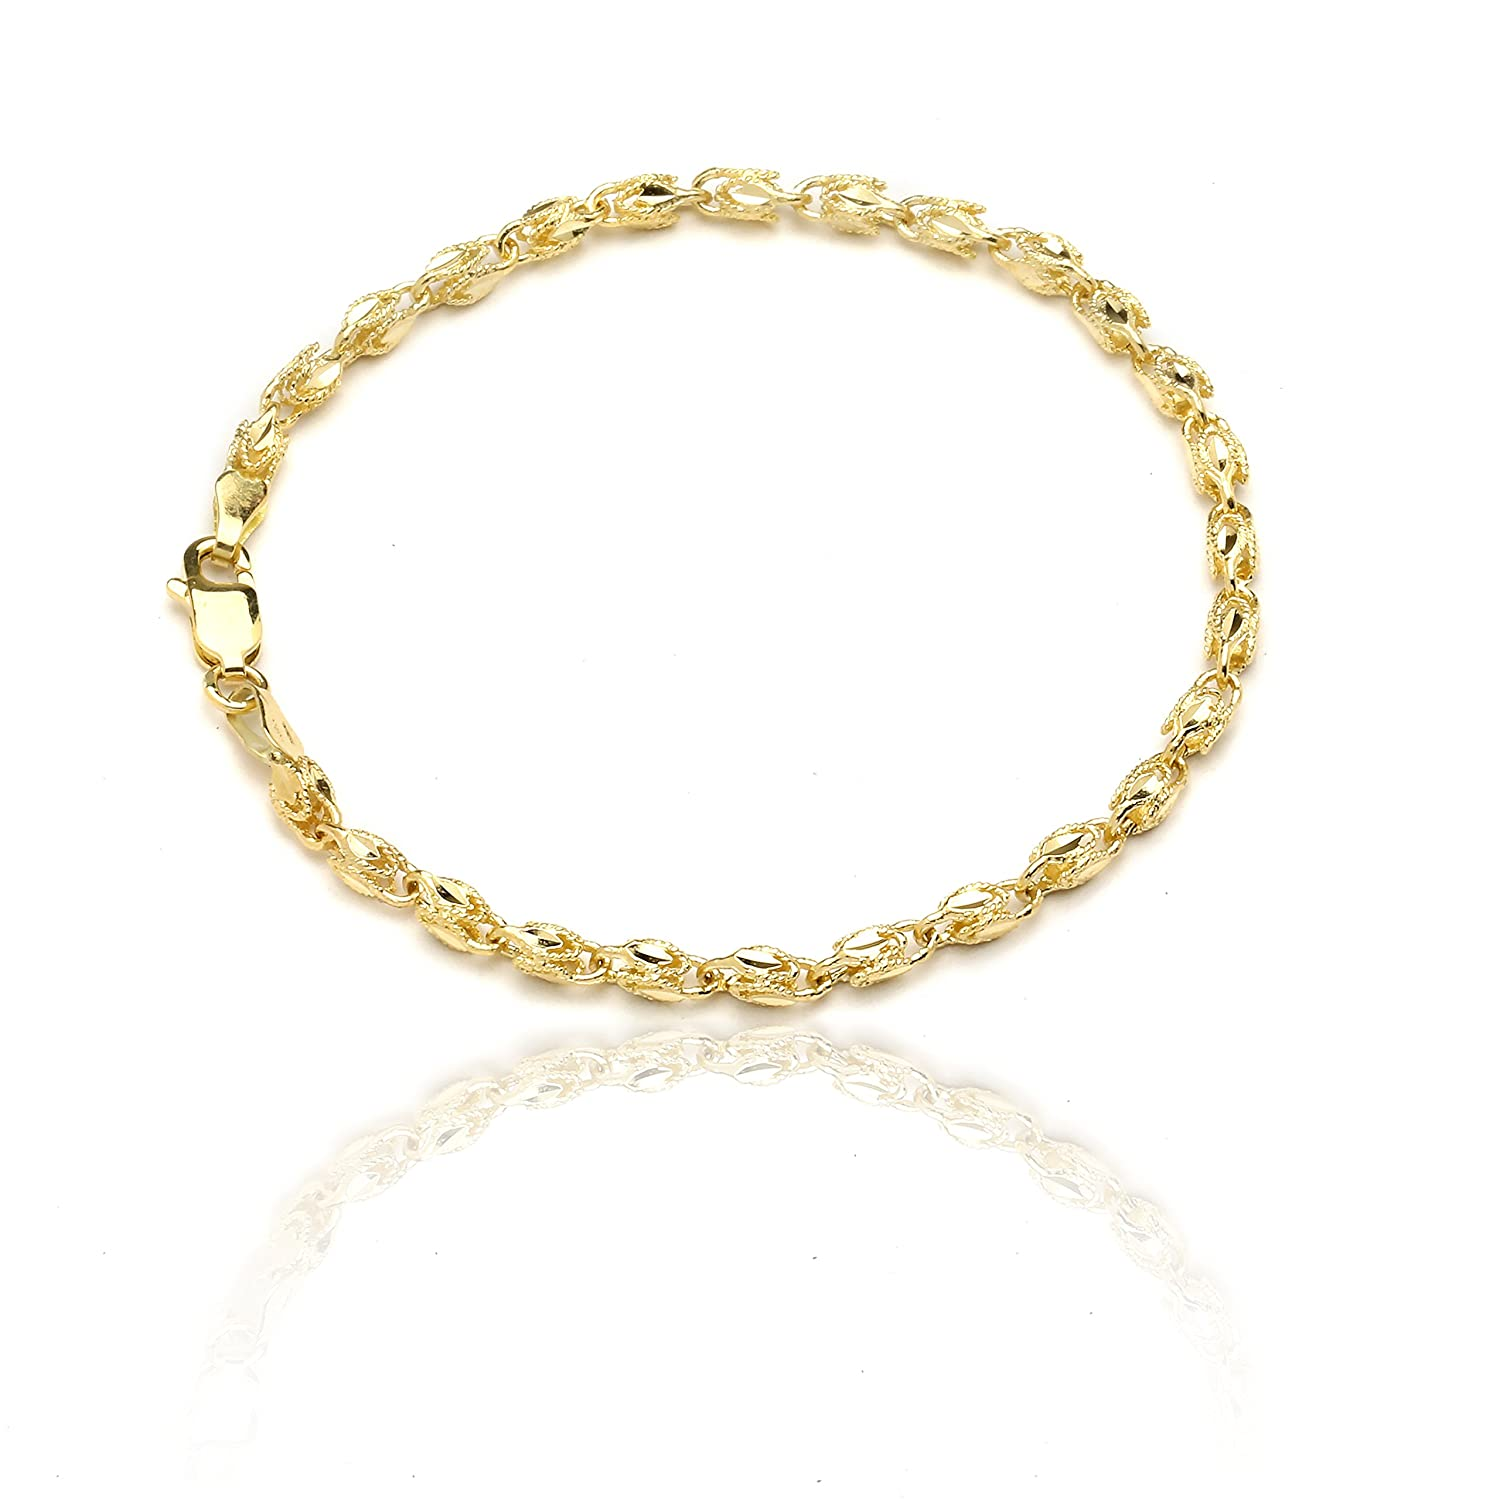 10k Yellow Gold Turkish Rope Chain Bracelet and Anklet for Women and Men, (3.5mm)